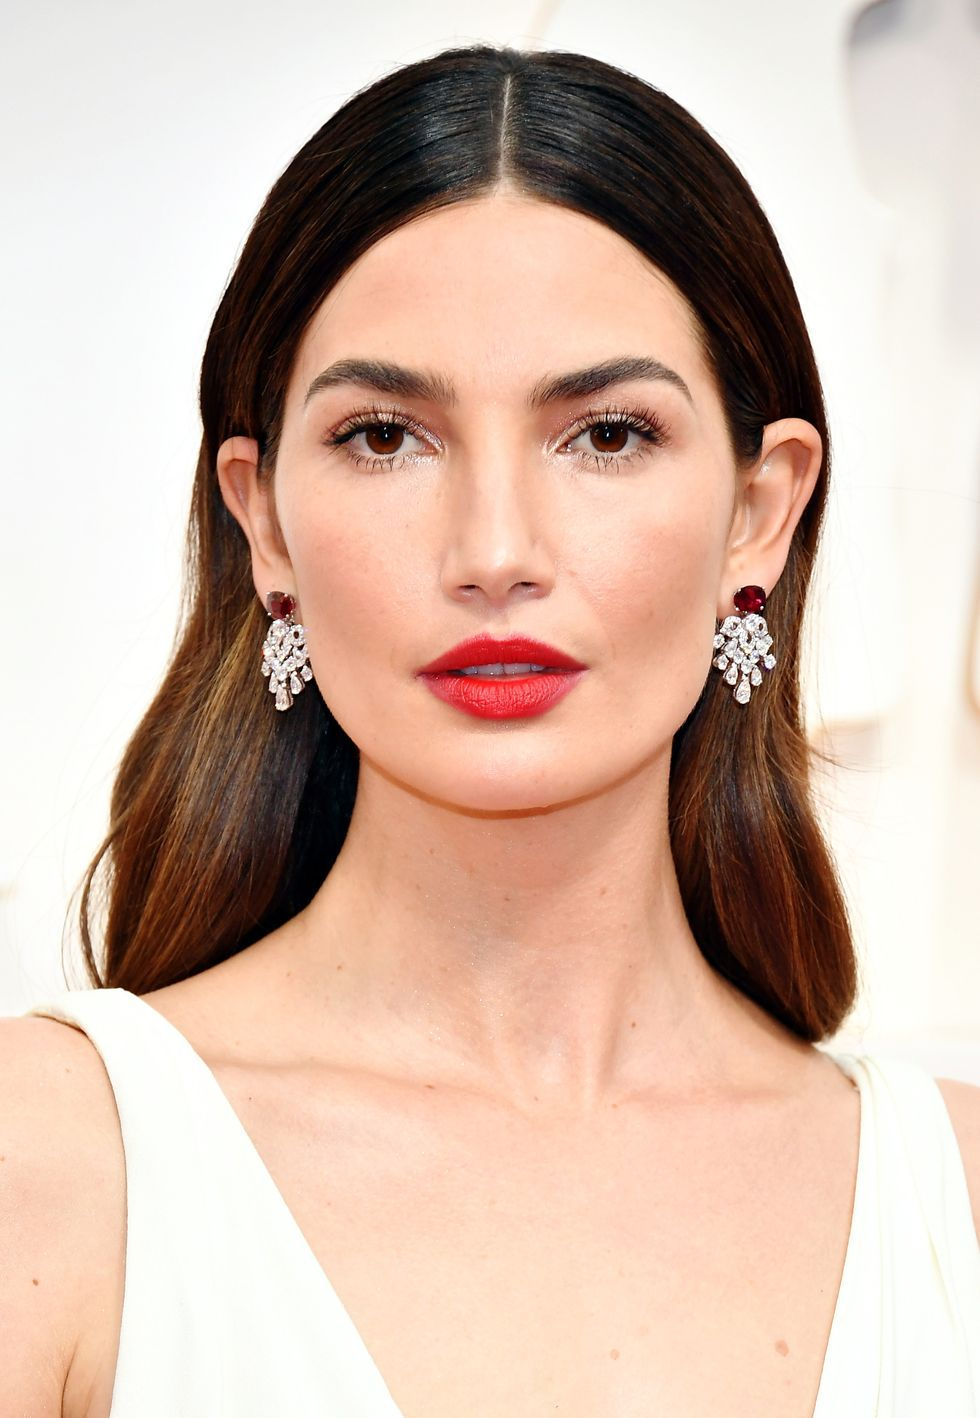 Best Beauty Looks @ Premiile Oscar 2020